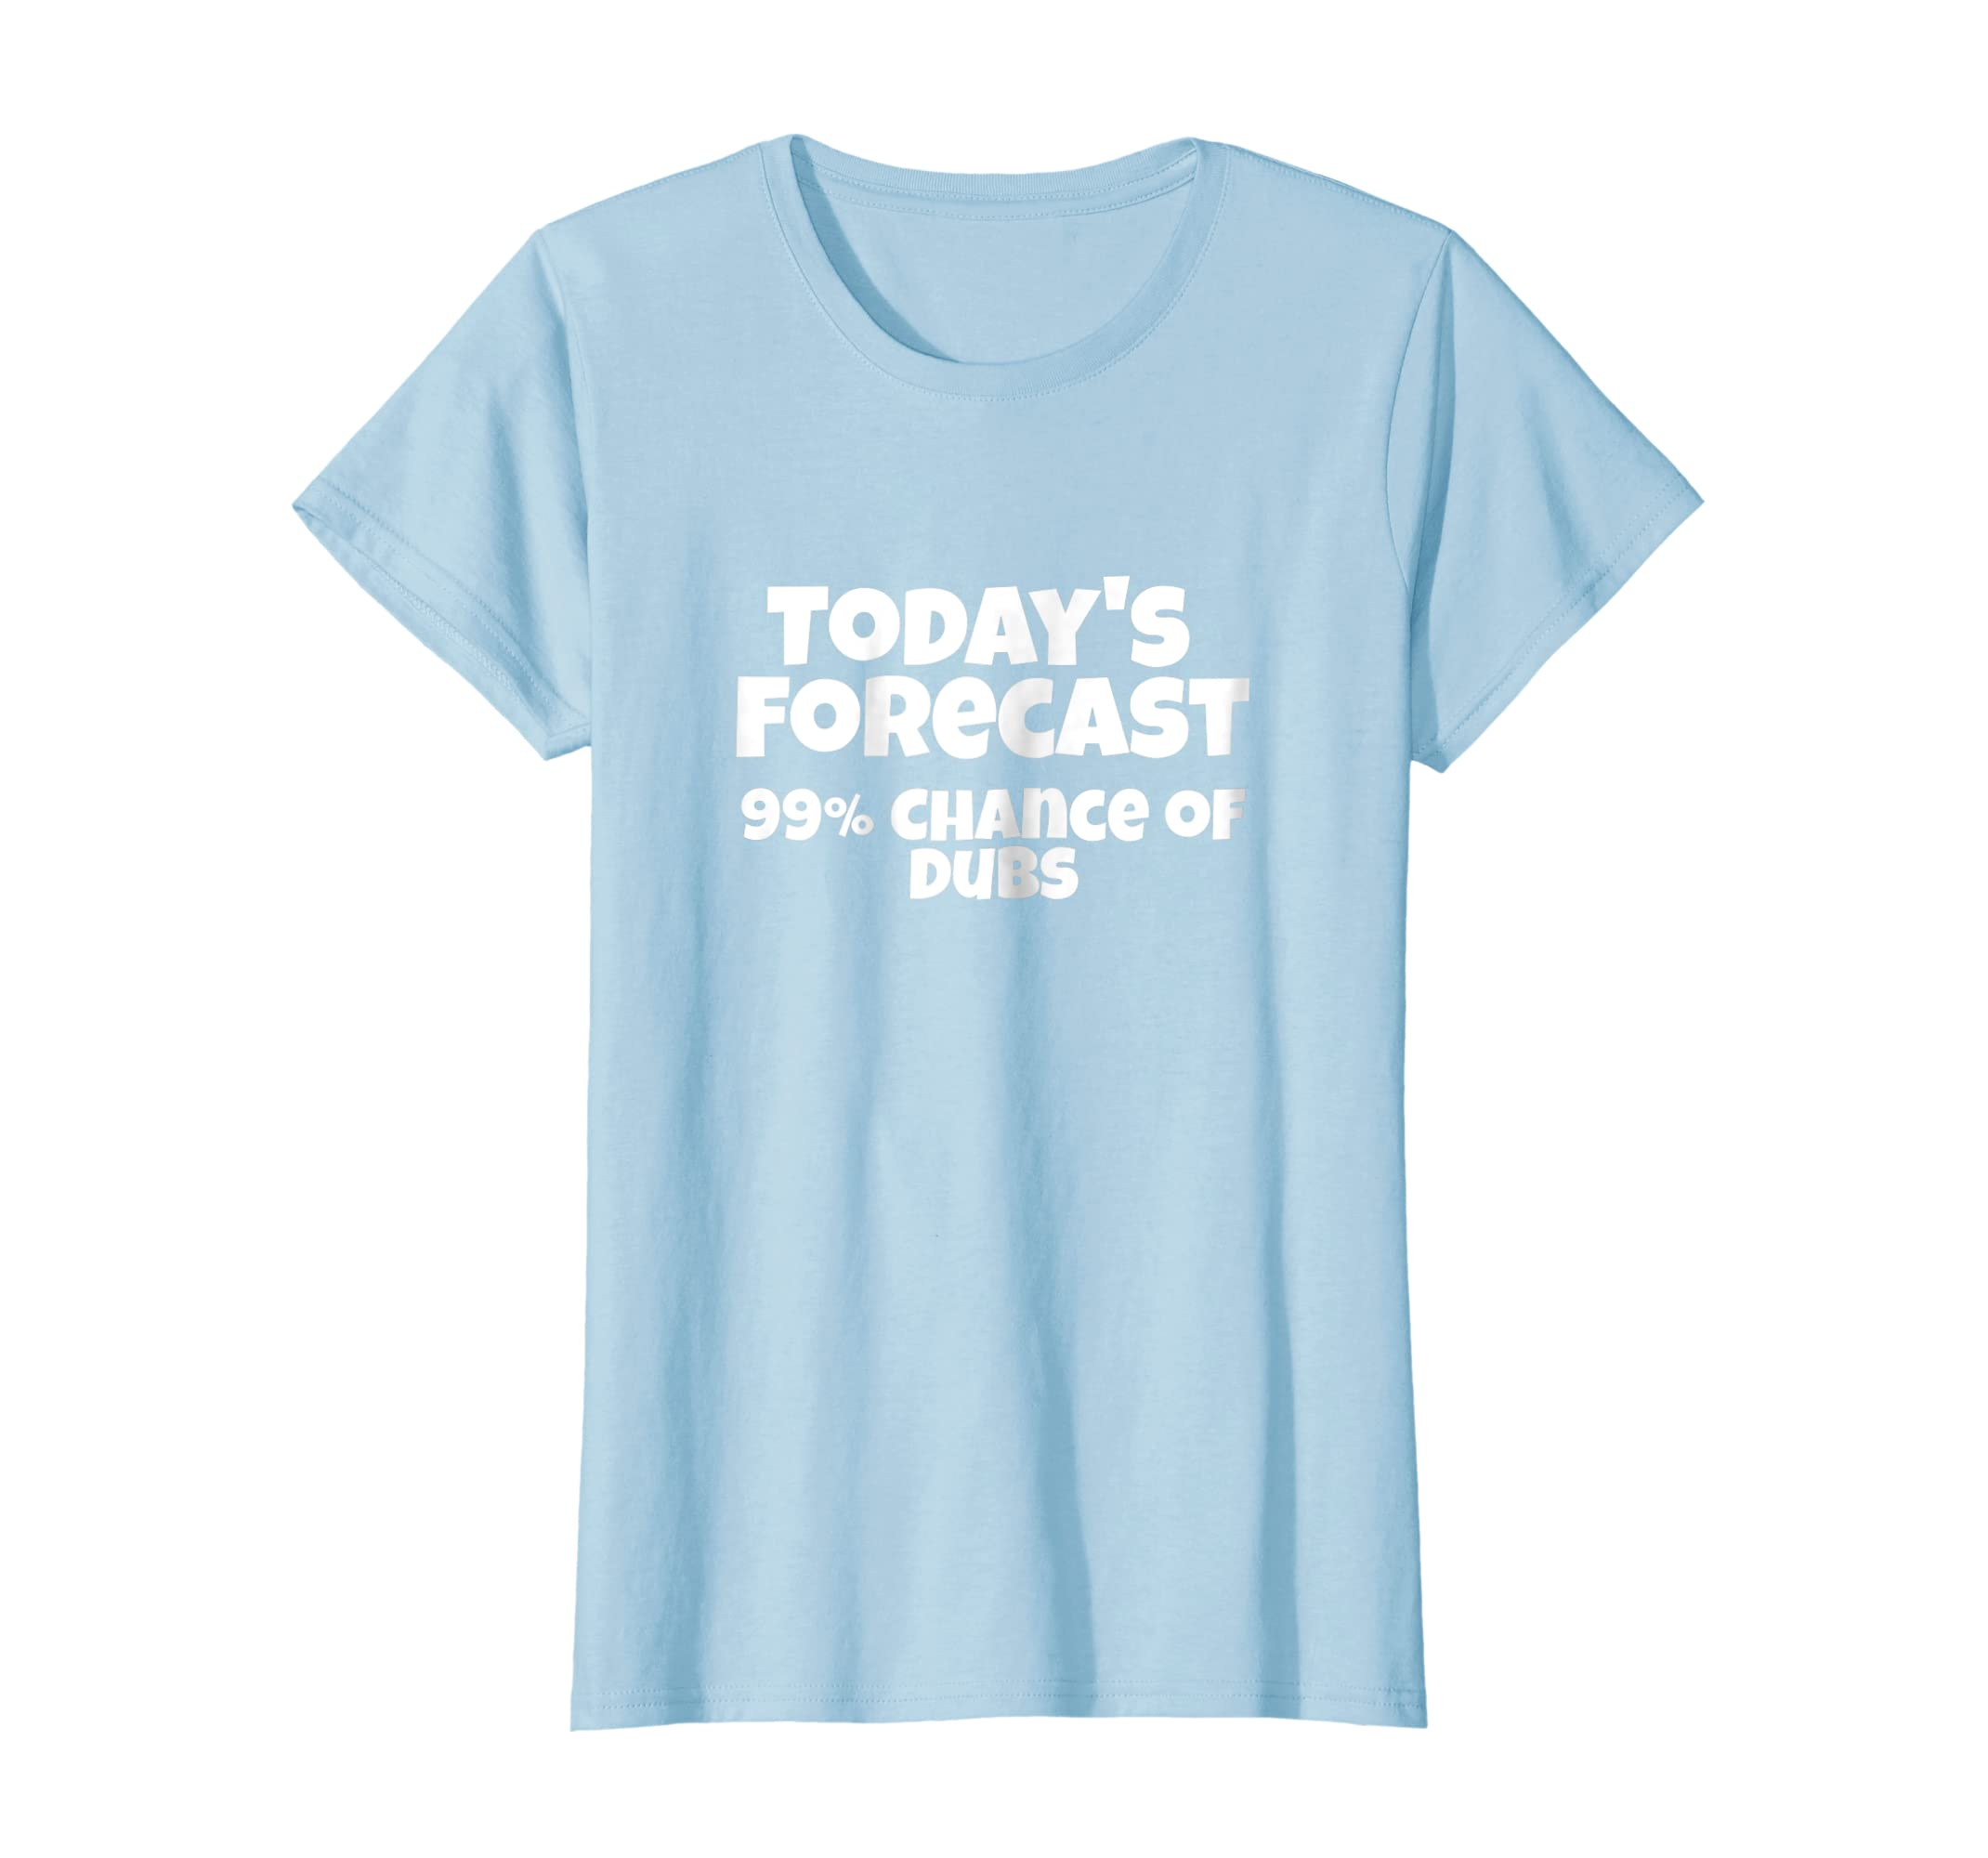 Amazon.com: Todays Forecast: 99% Chance of Dubs: Clothing